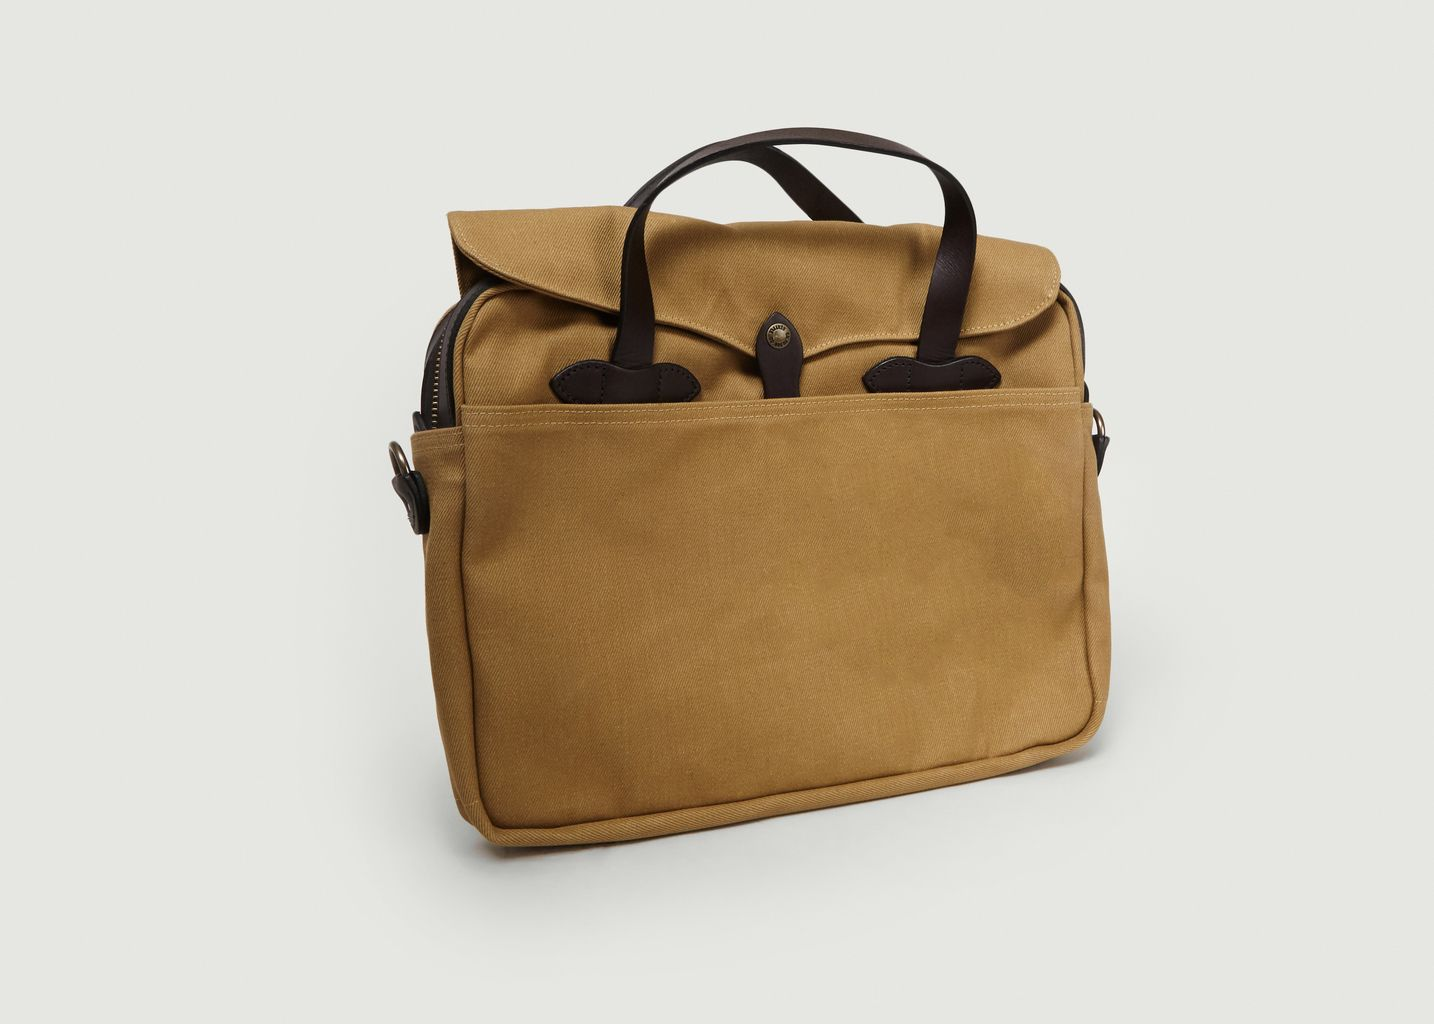 Cartable - Filson